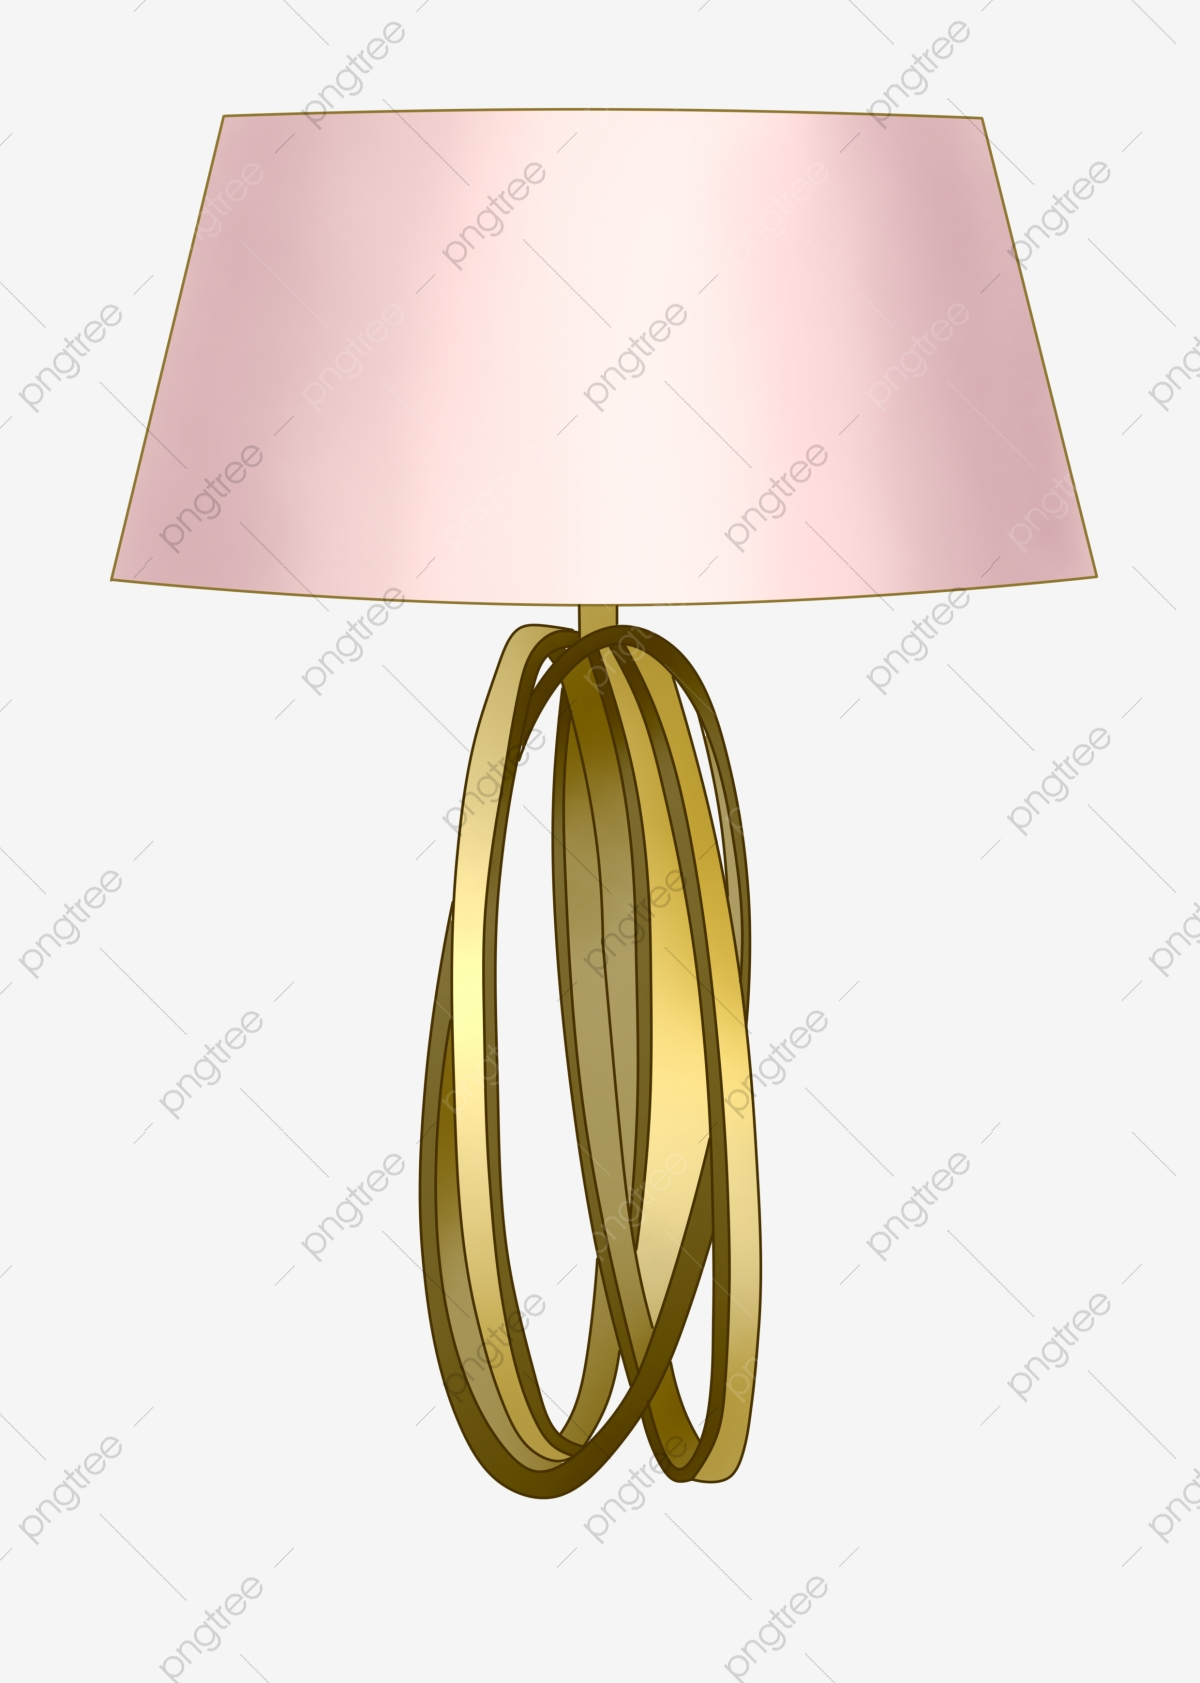 Household Appliances Pink Desk Lamp Illustration Personalized Table Lamp Creative Table Lamp Home Appliance Table Lamp Png Transparent Clipart Image And Psd File For Free Download